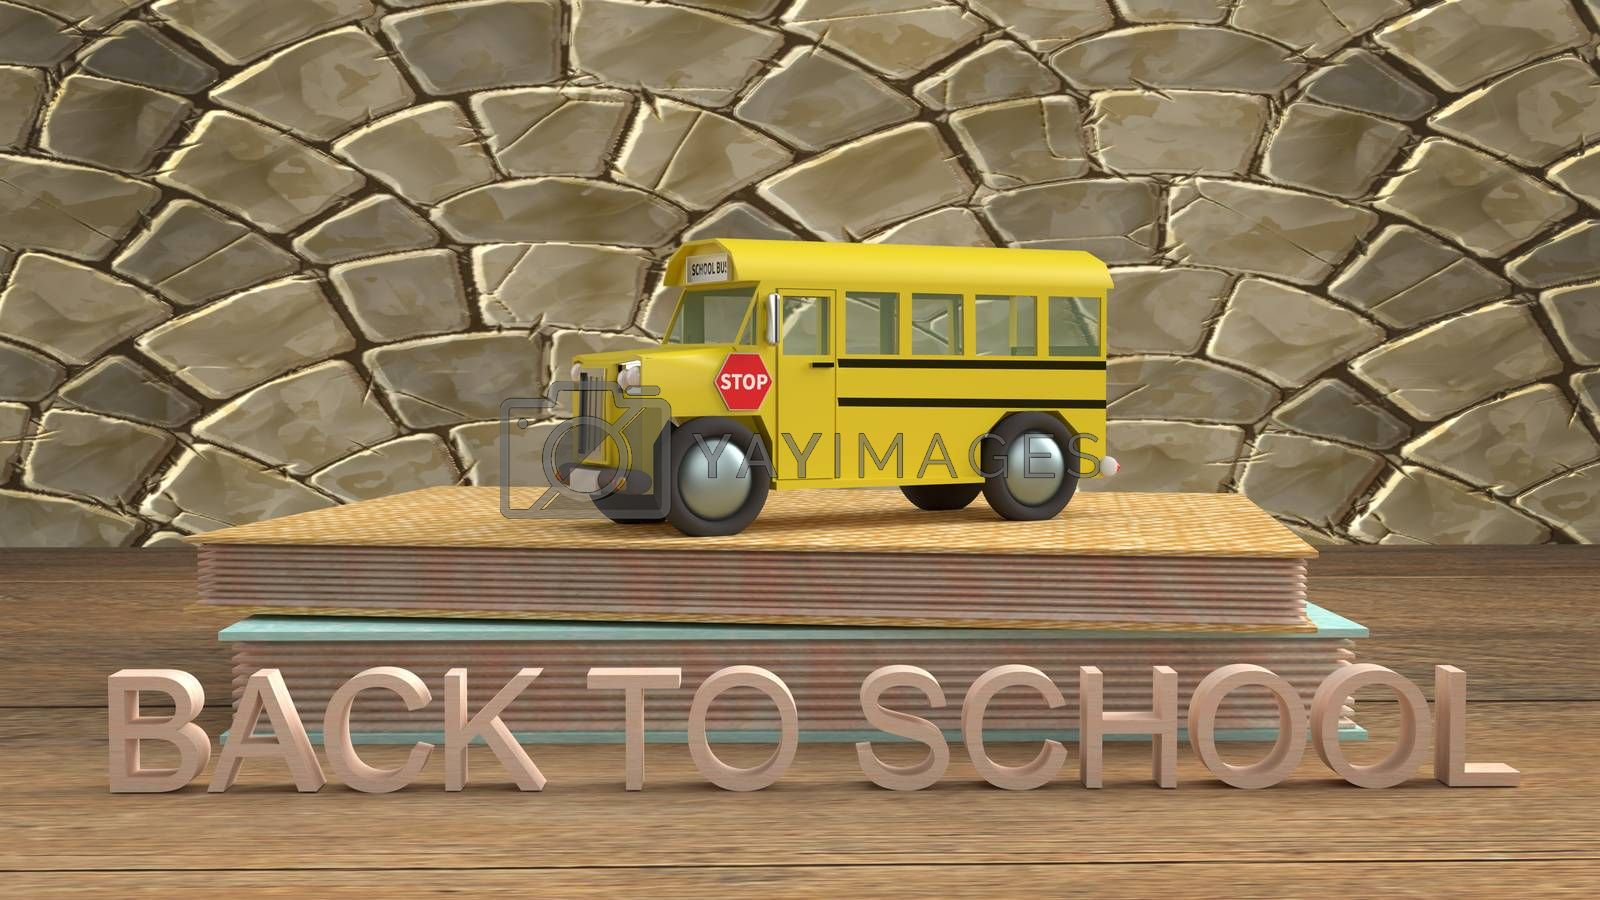 The school bus 3d rendering for back to school content.